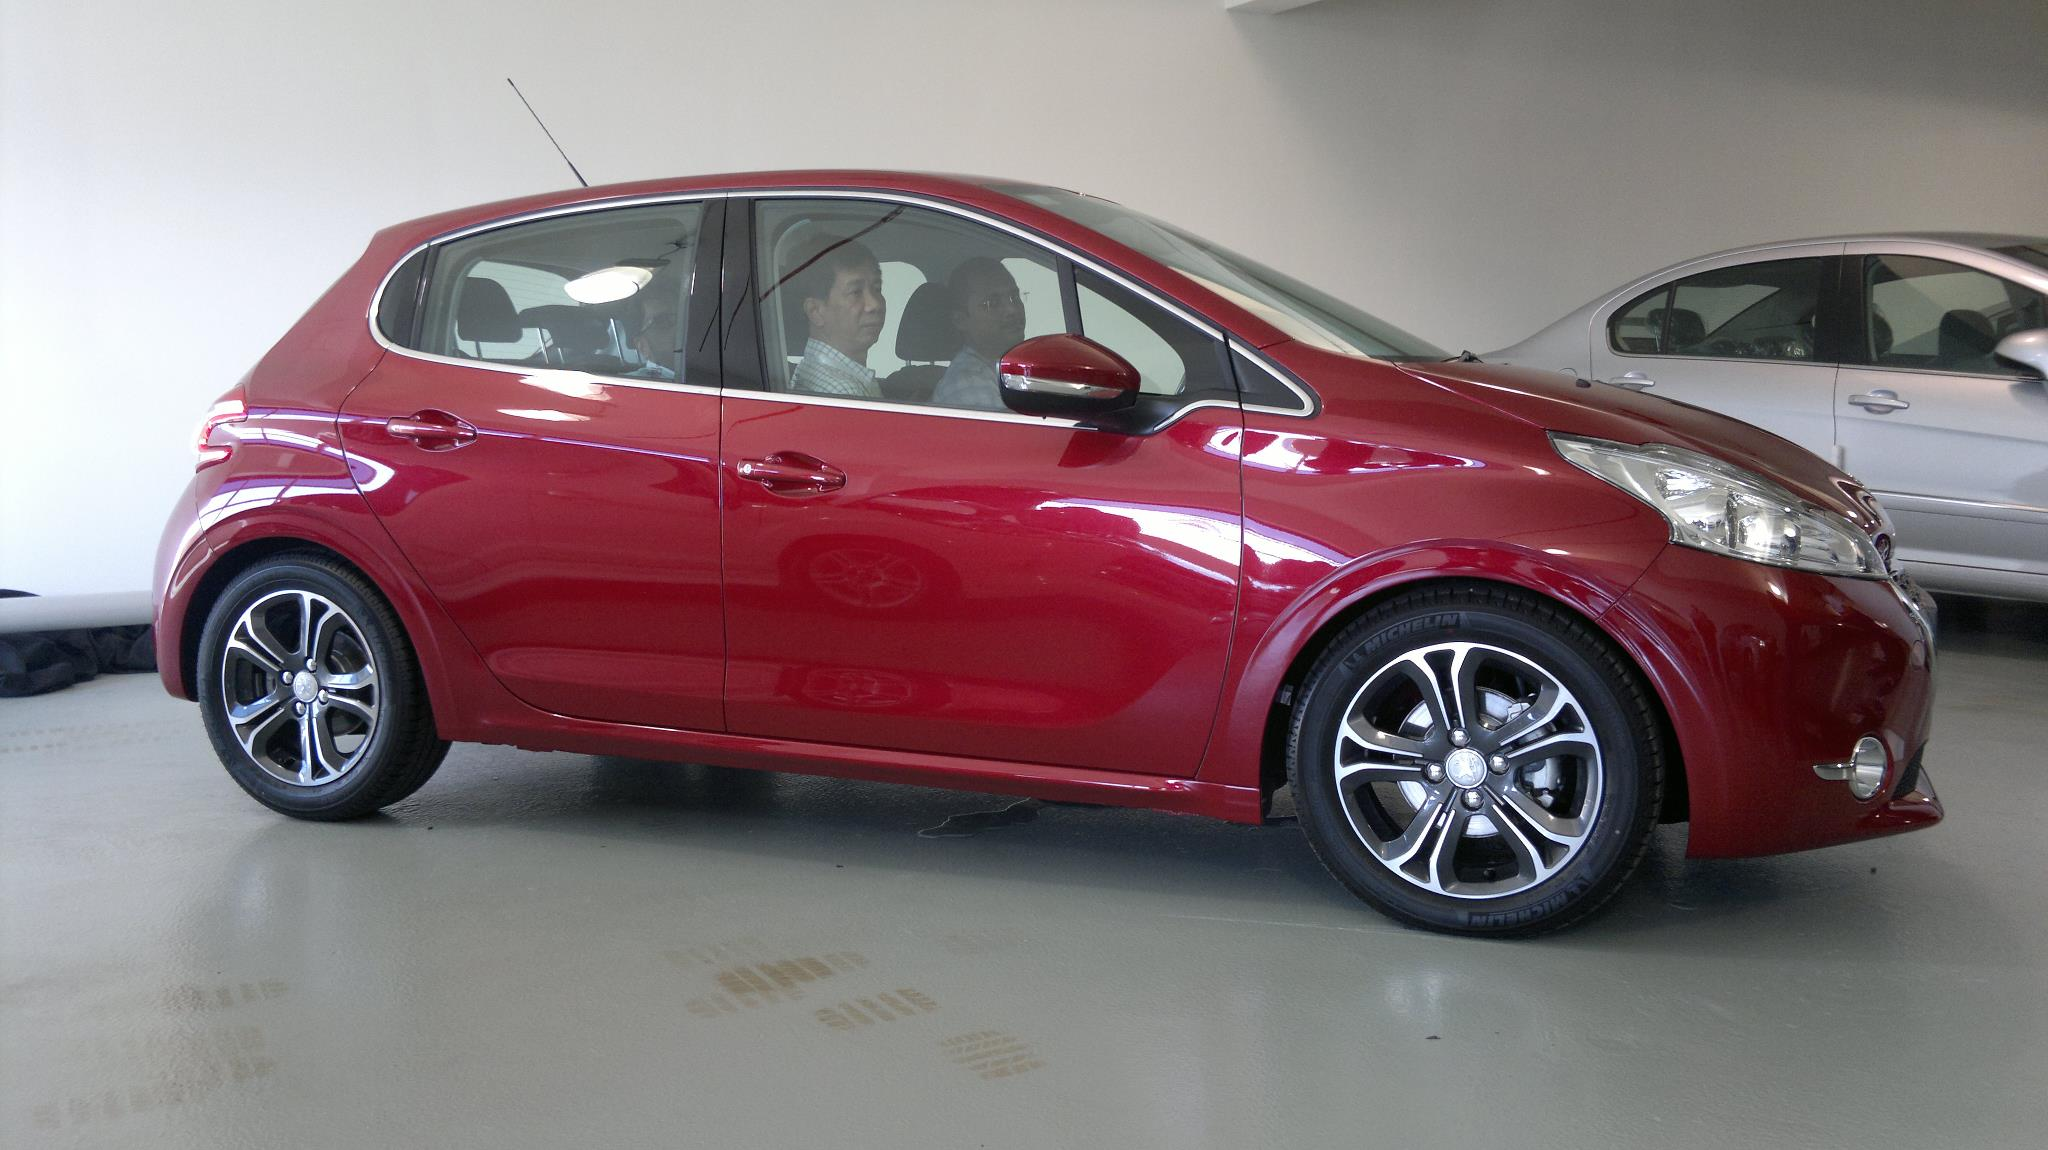 The New Peugeot 208 Up Close And Personal